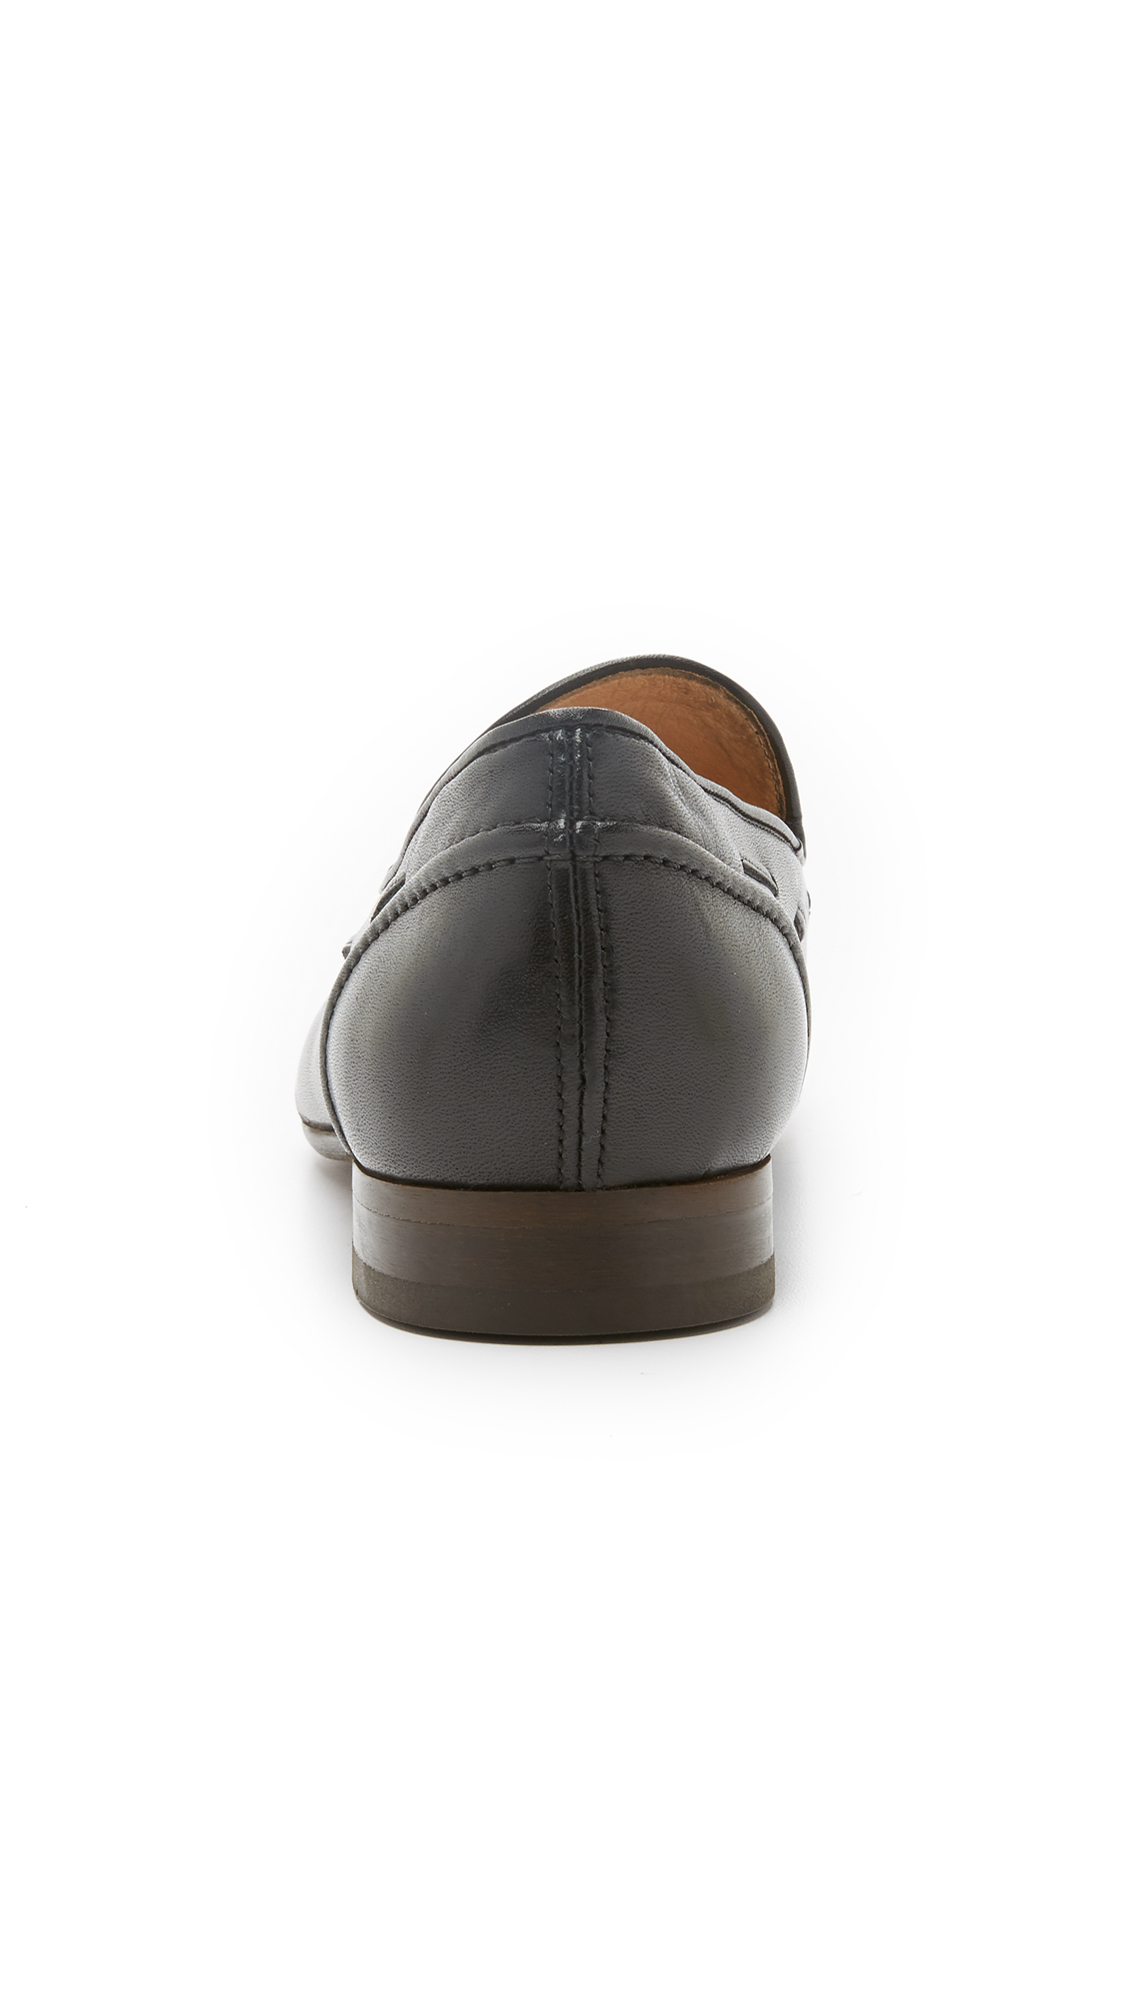 H by Hudson Leather Pierre Tassel Loafers in Black for Men